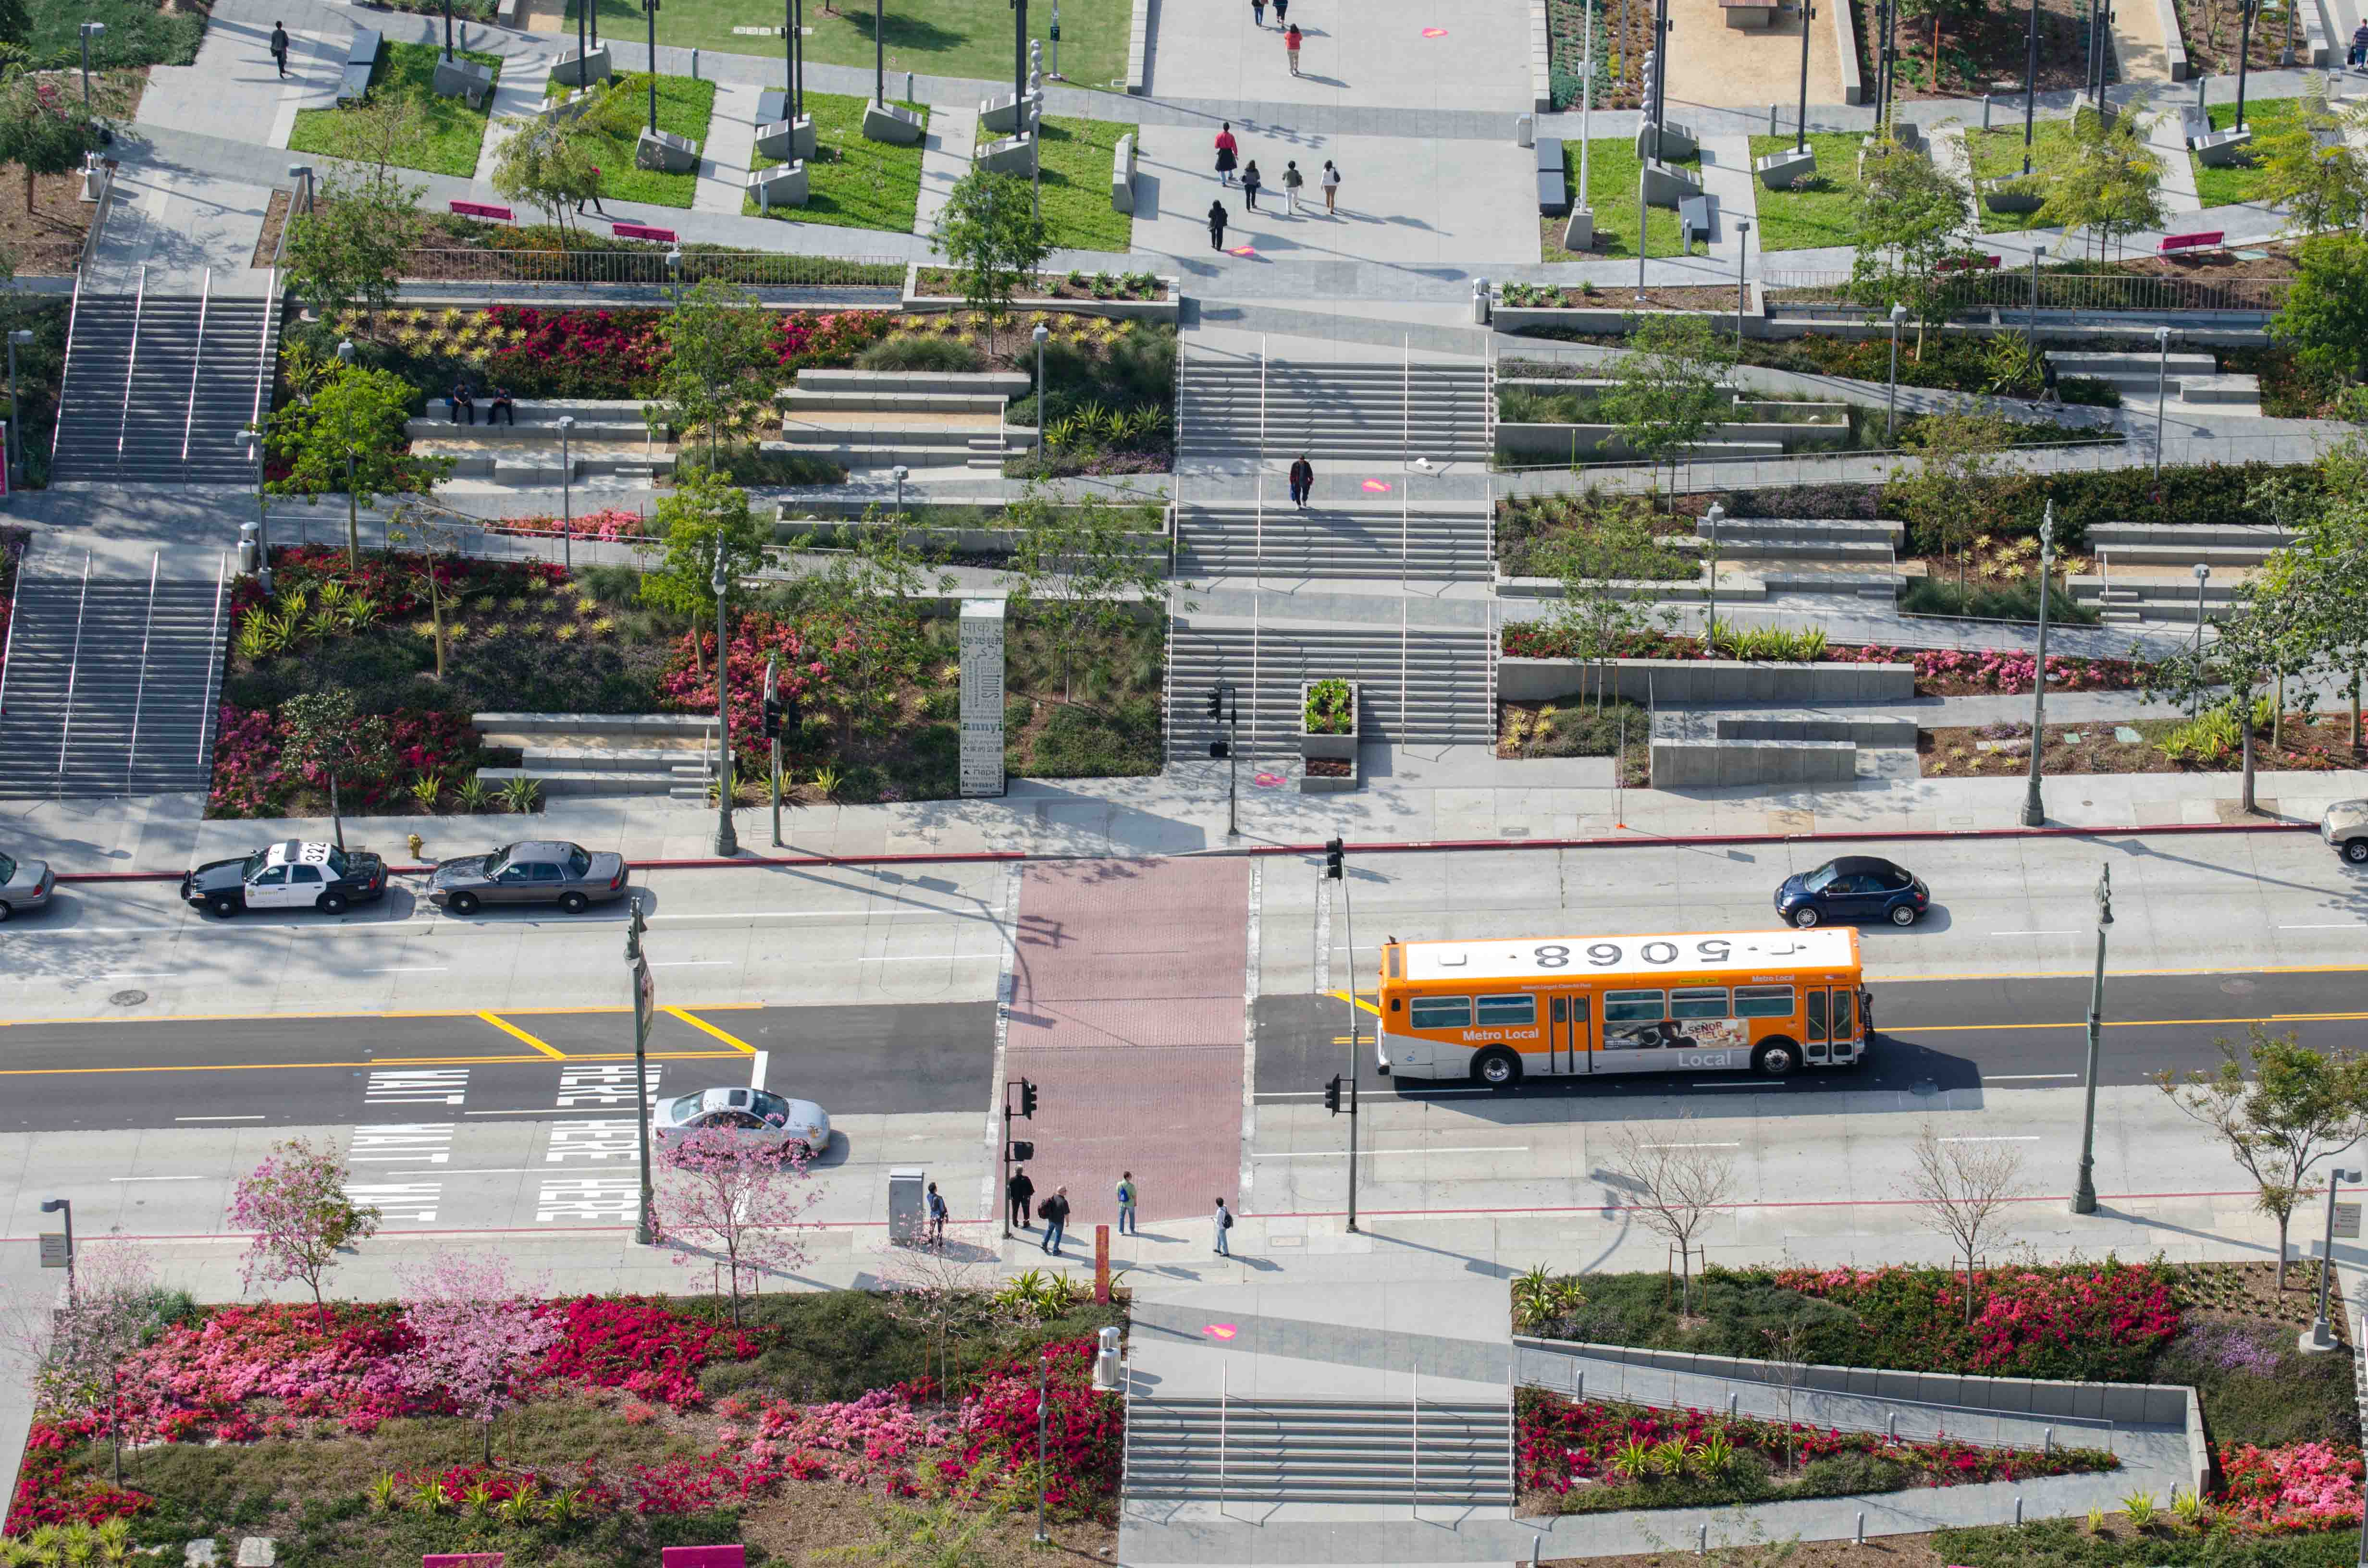 ART OF TRANSIT: A Metro local bus on Broadway passes the entrances to Grand Park in downtown L.A. Photo by Steve Hymon/Metro.